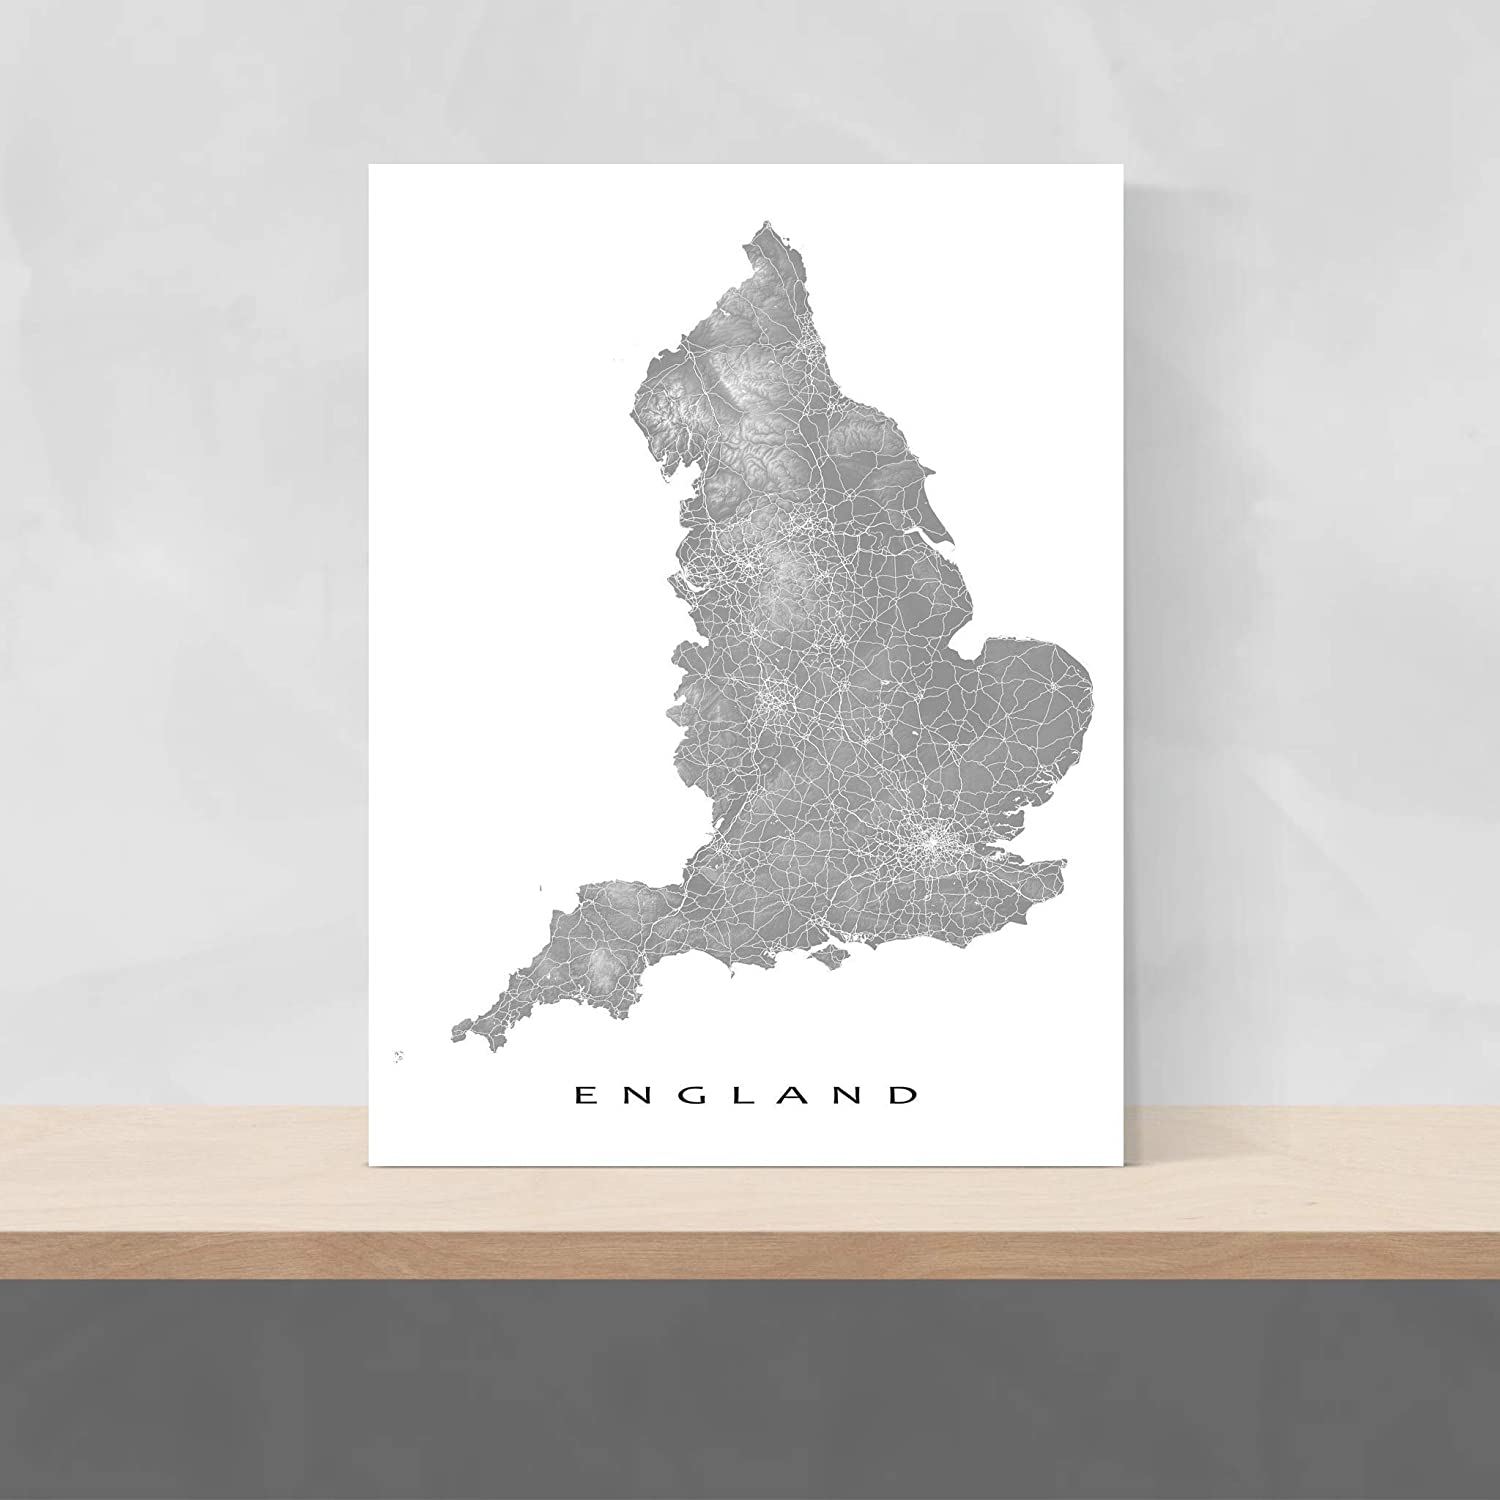 Country Map Of England.England Map Wall Print Country Landscape Art Poster Uk London